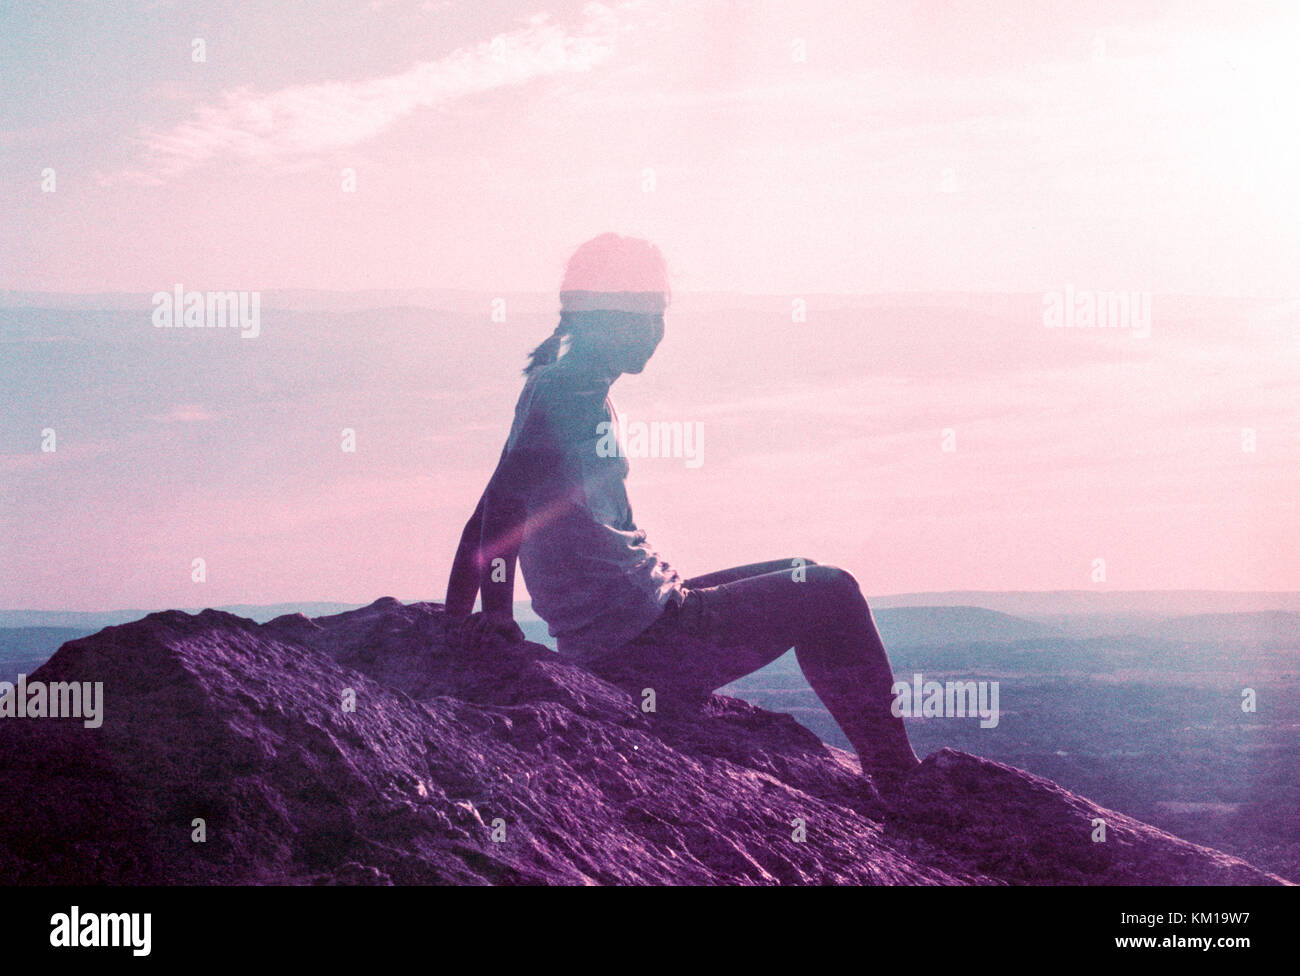 Double Exposure of woman on rock looking out at landscape at sunrise - Stock Image